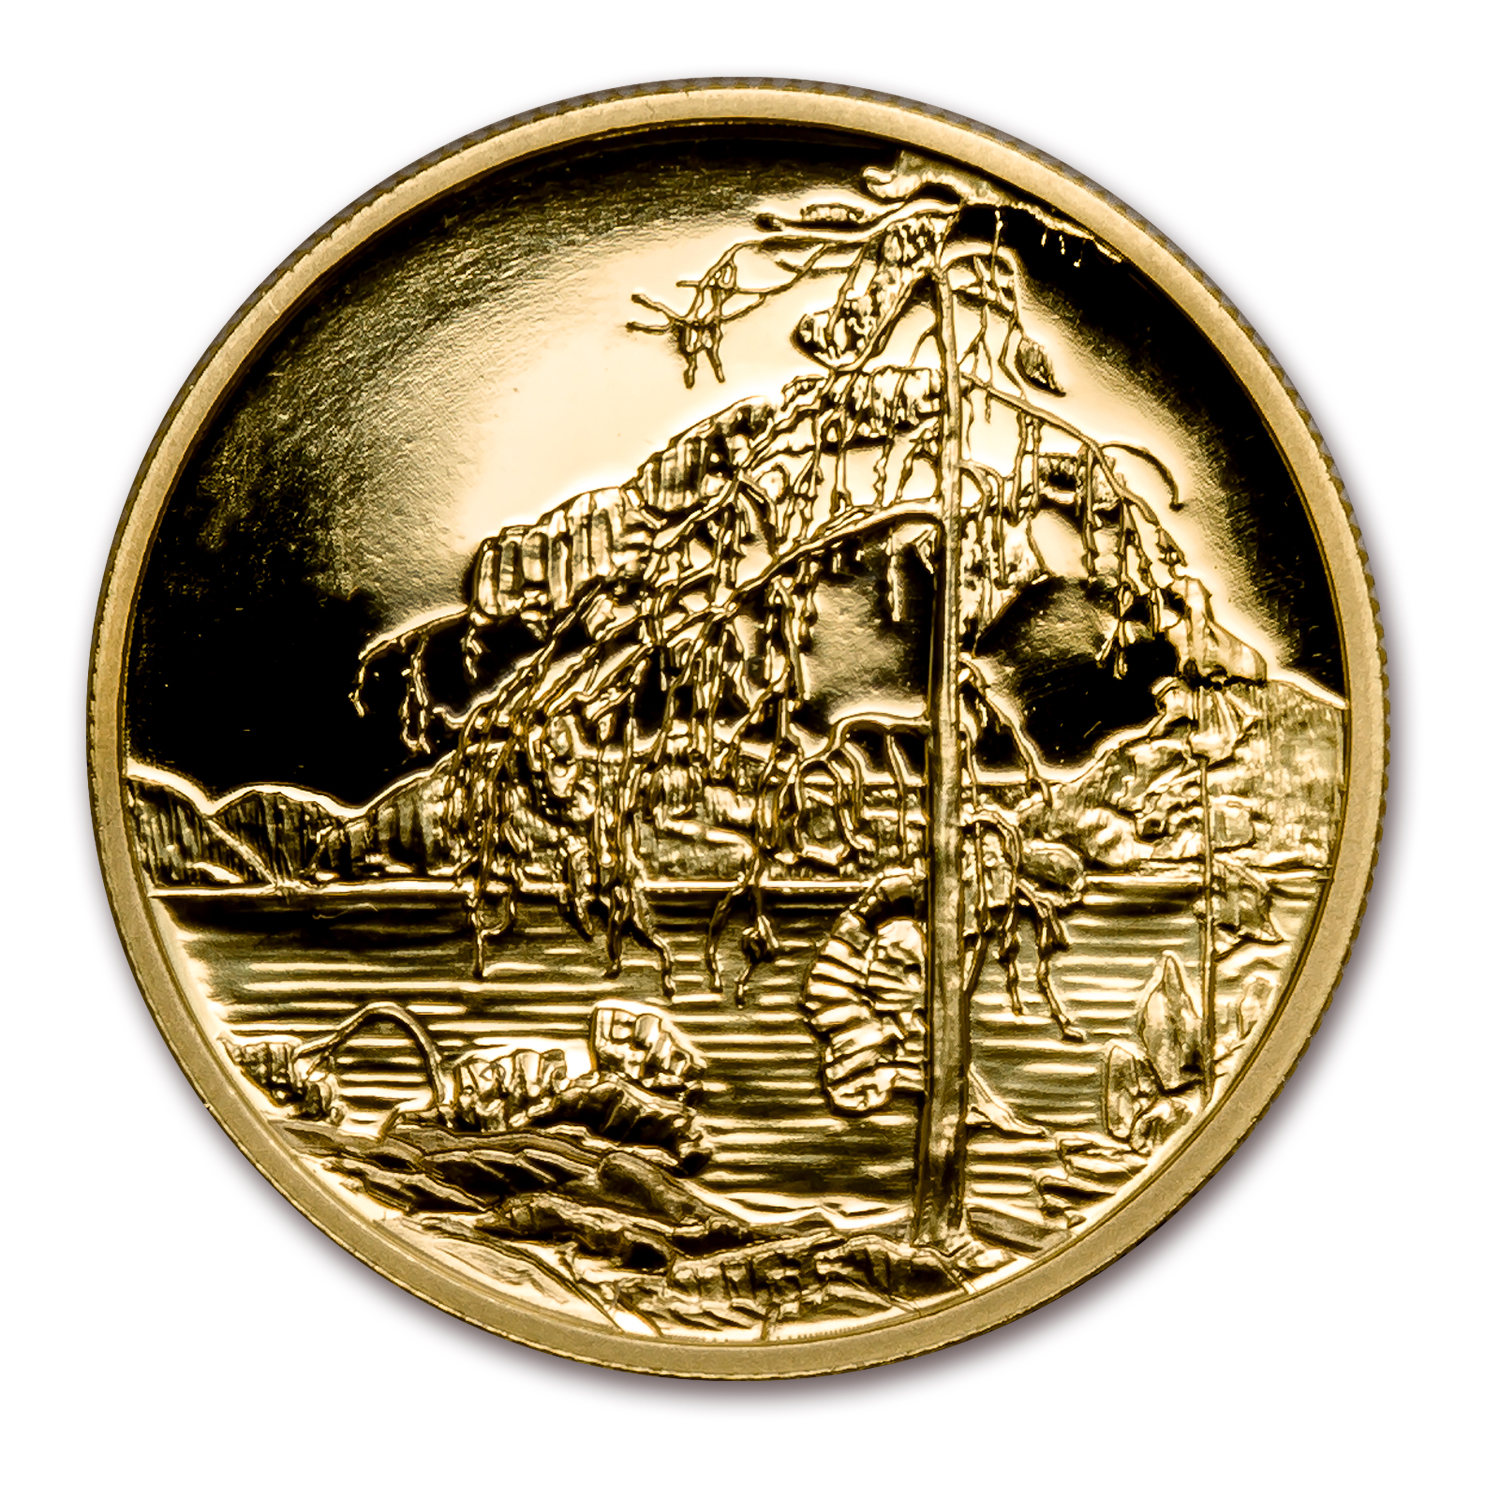 2002 Canada 1/2 oz Proof Gold $200 Jack Pine